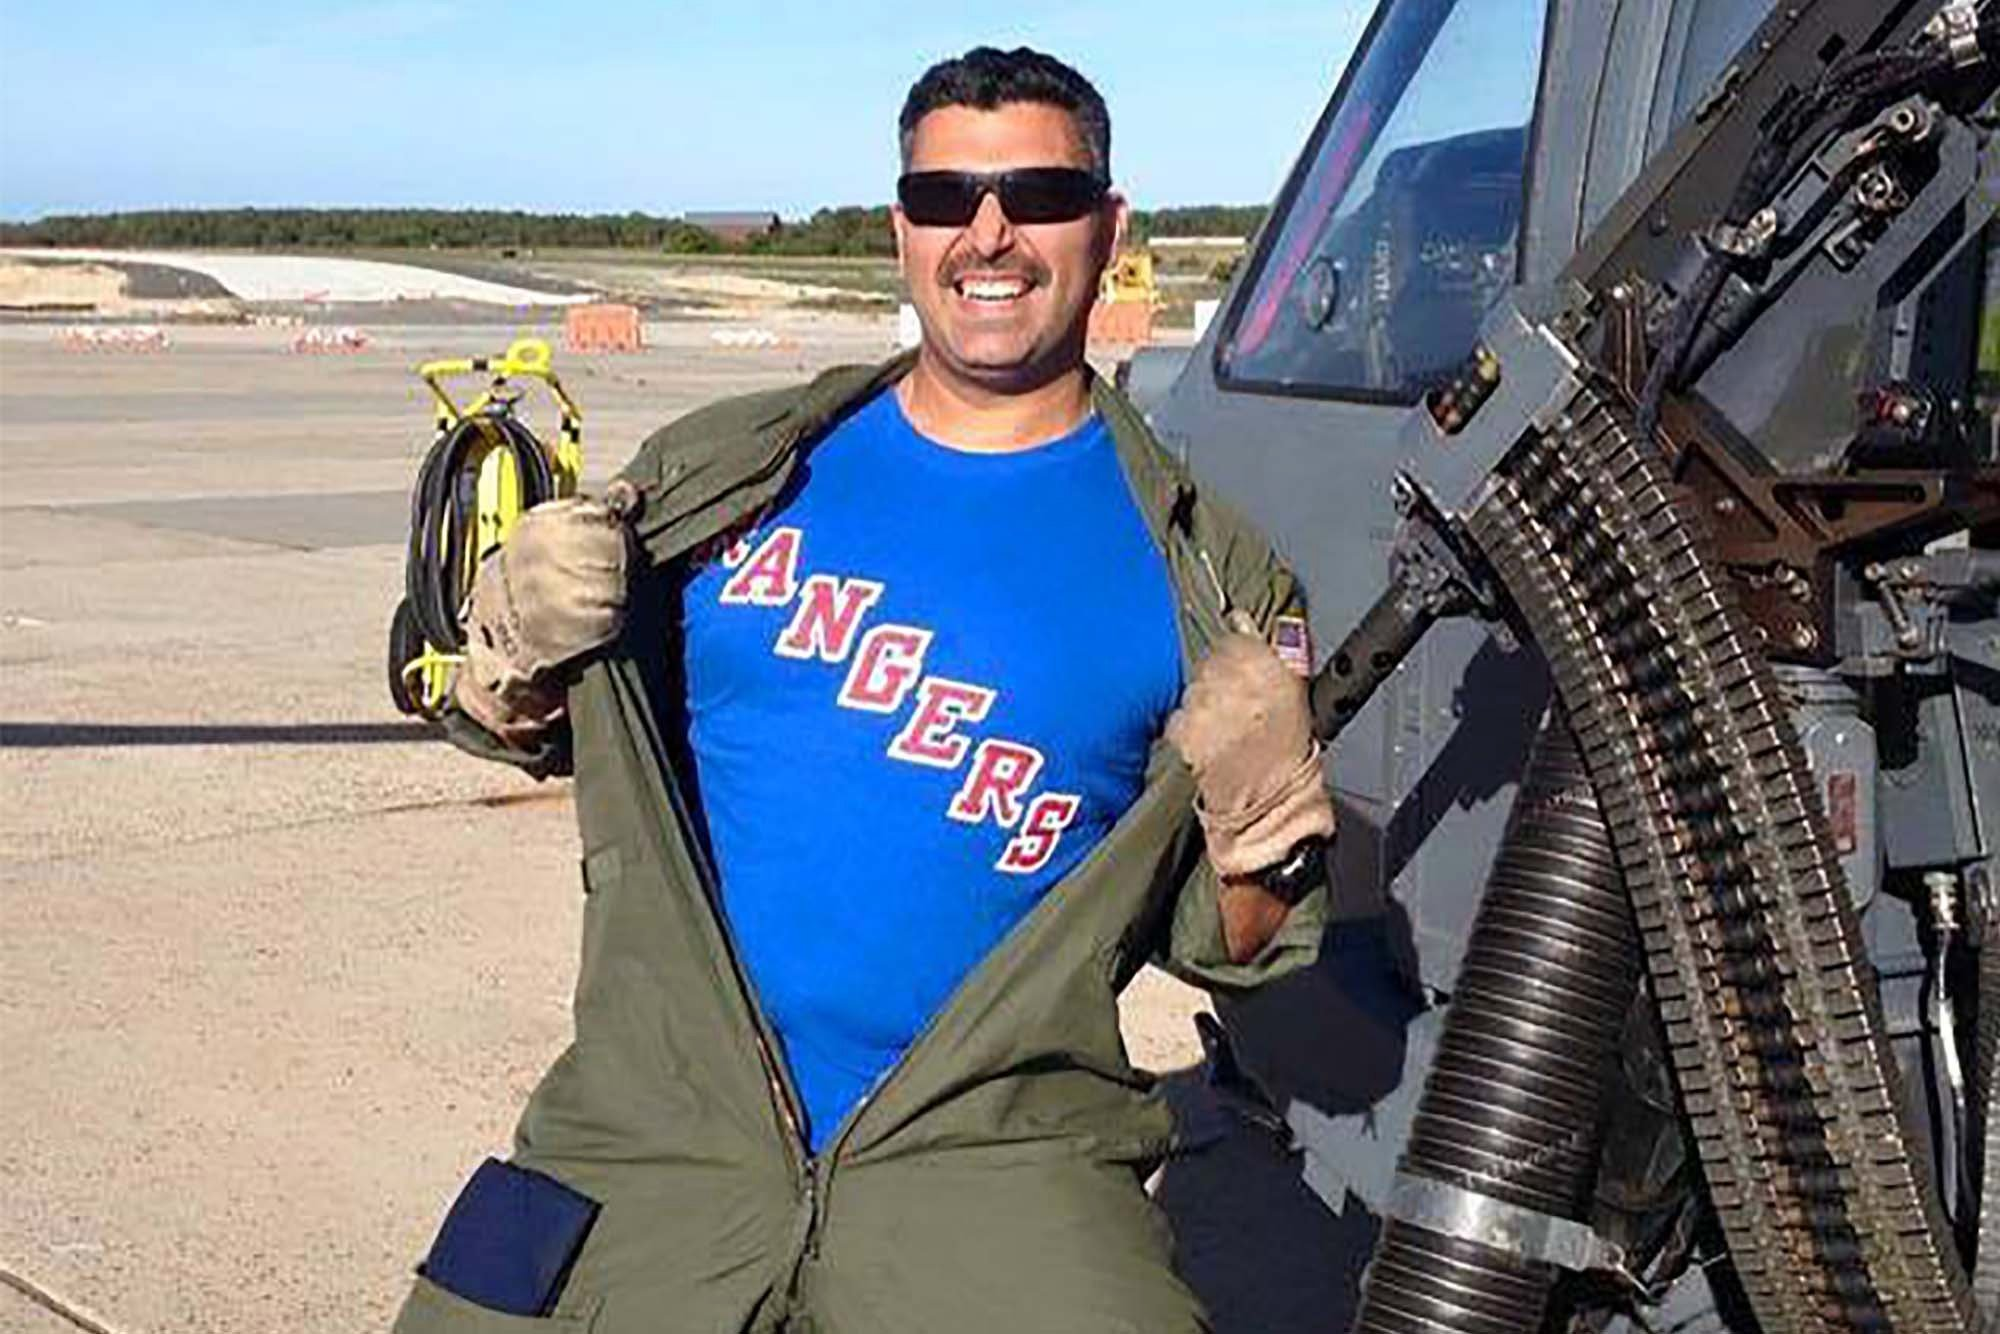 FDNY lieutenant was on final tour before military chopper crash